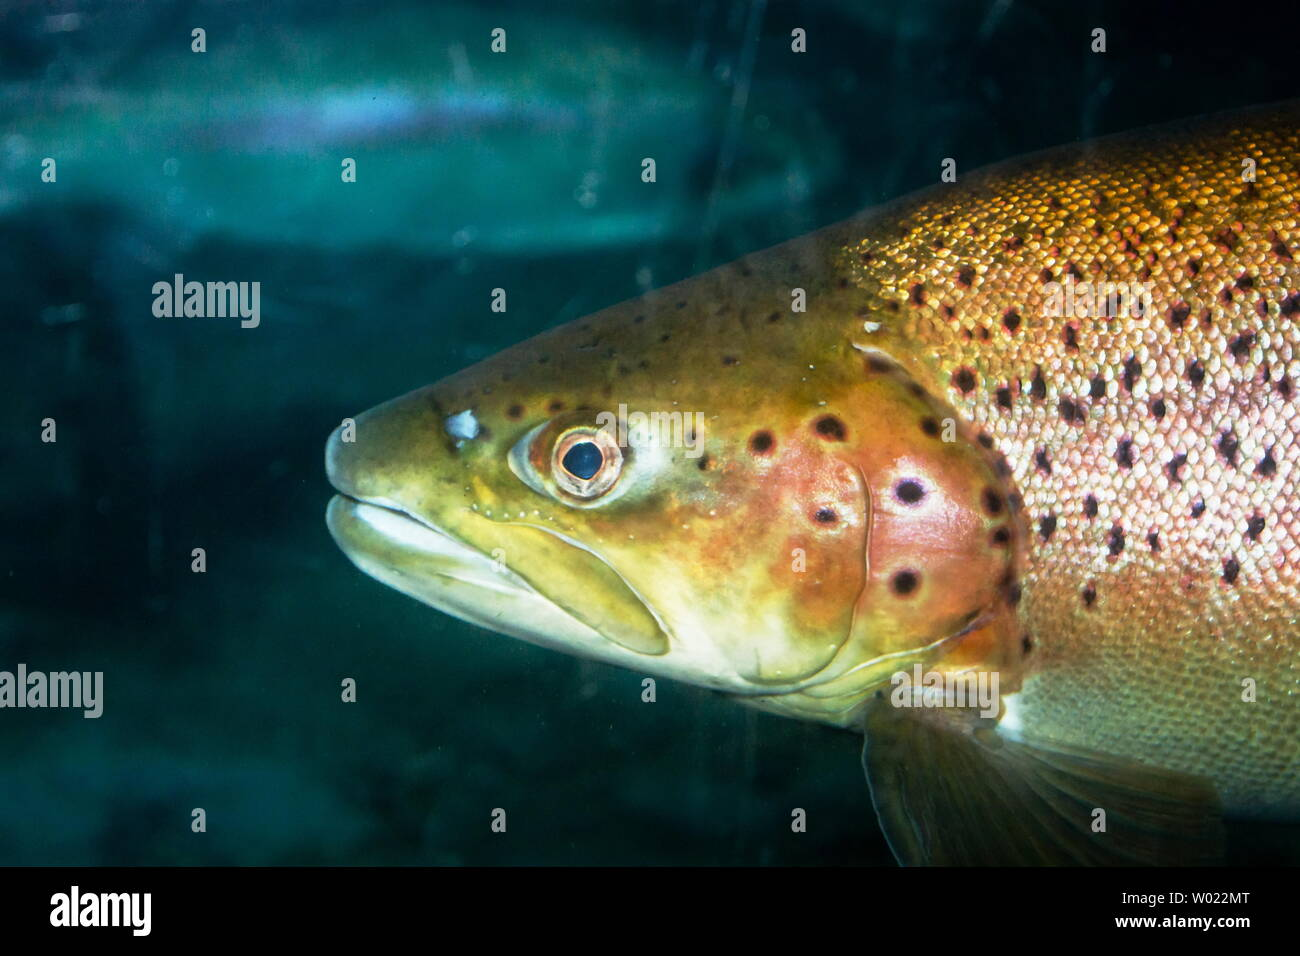 The brown trout (Salmo trutta) is a European species of salmonid fish that has been widely introduced into suitable environments globally. - Stock Image